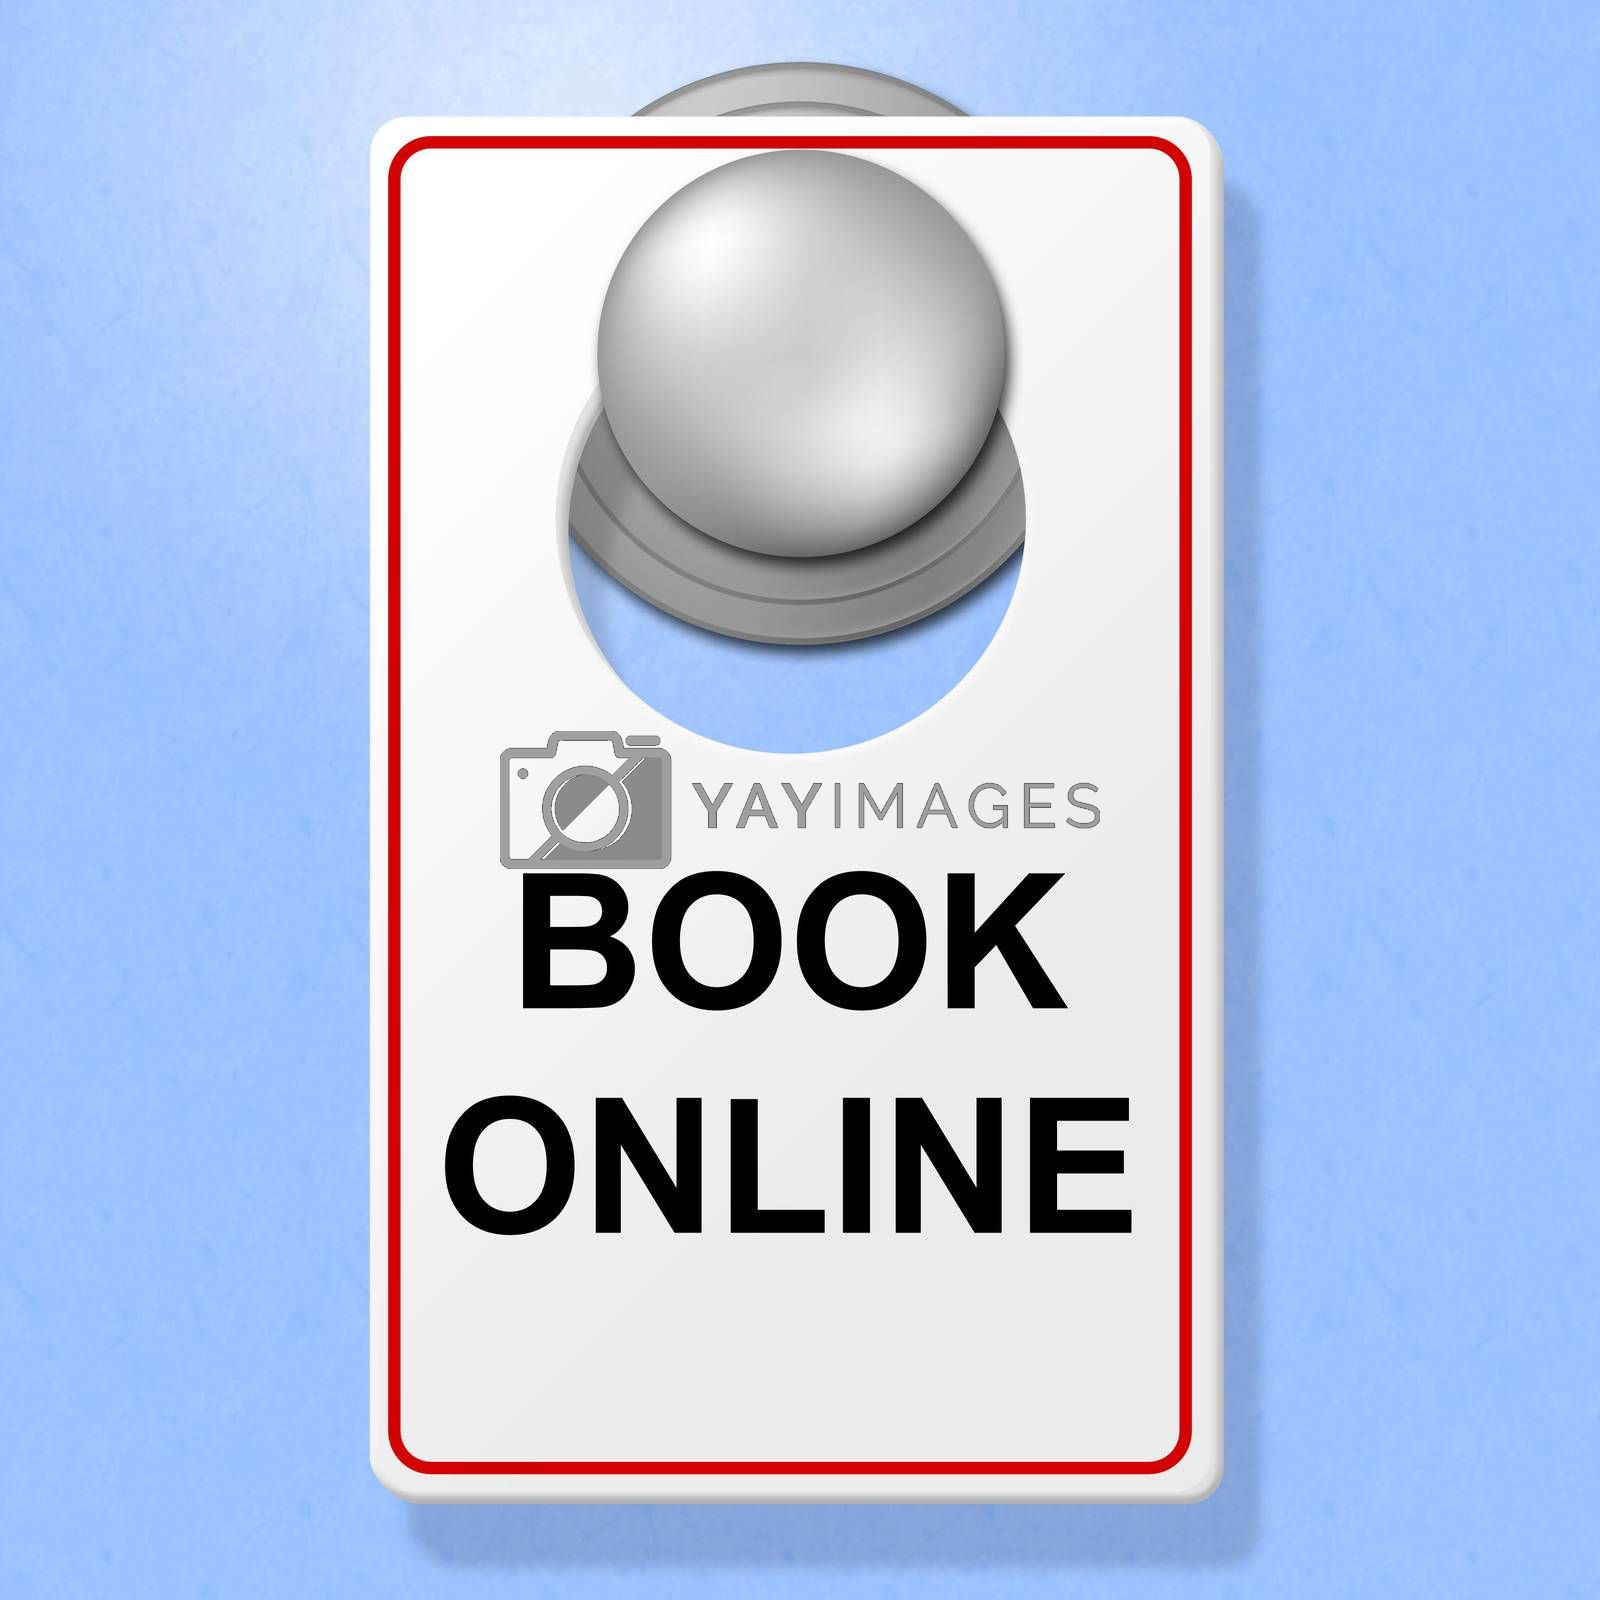 Book Online Sign Represents Single Room And Accommodation by stuartmiles